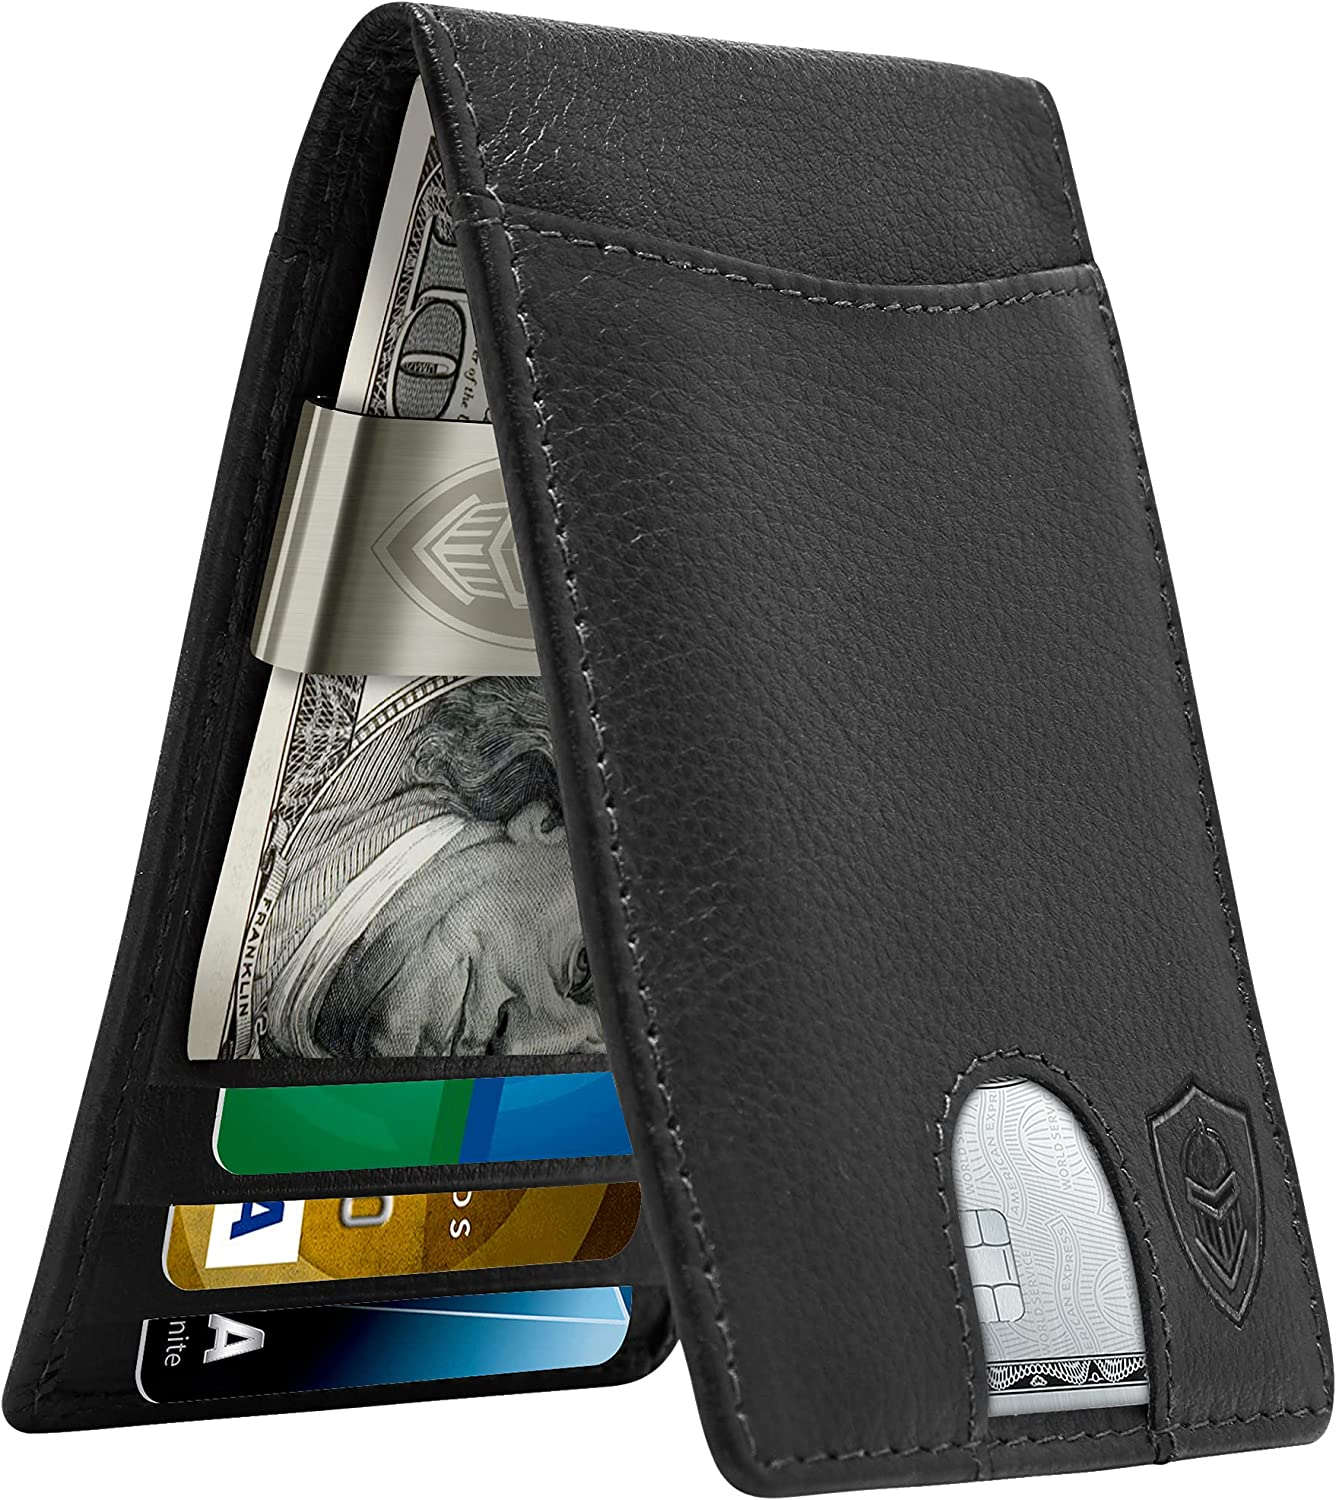 Real Leather Wallets for Men - Fro Year-end annual account Clip Money Wallet shipfree Bifold RFID